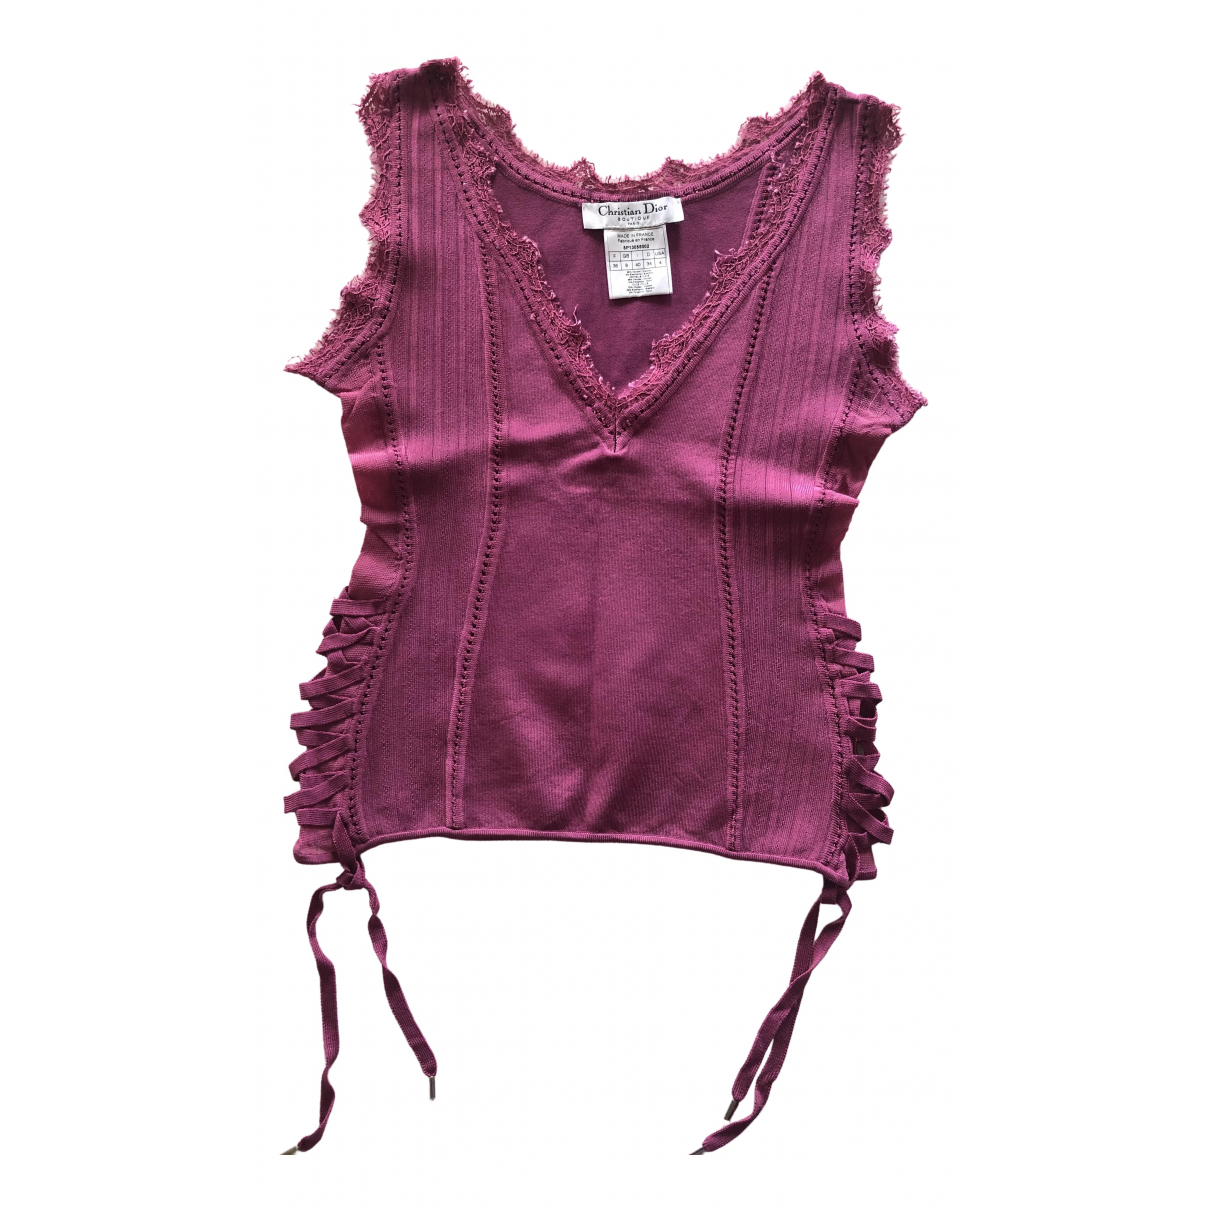 Dior \N Pink  top for Women 36 FR